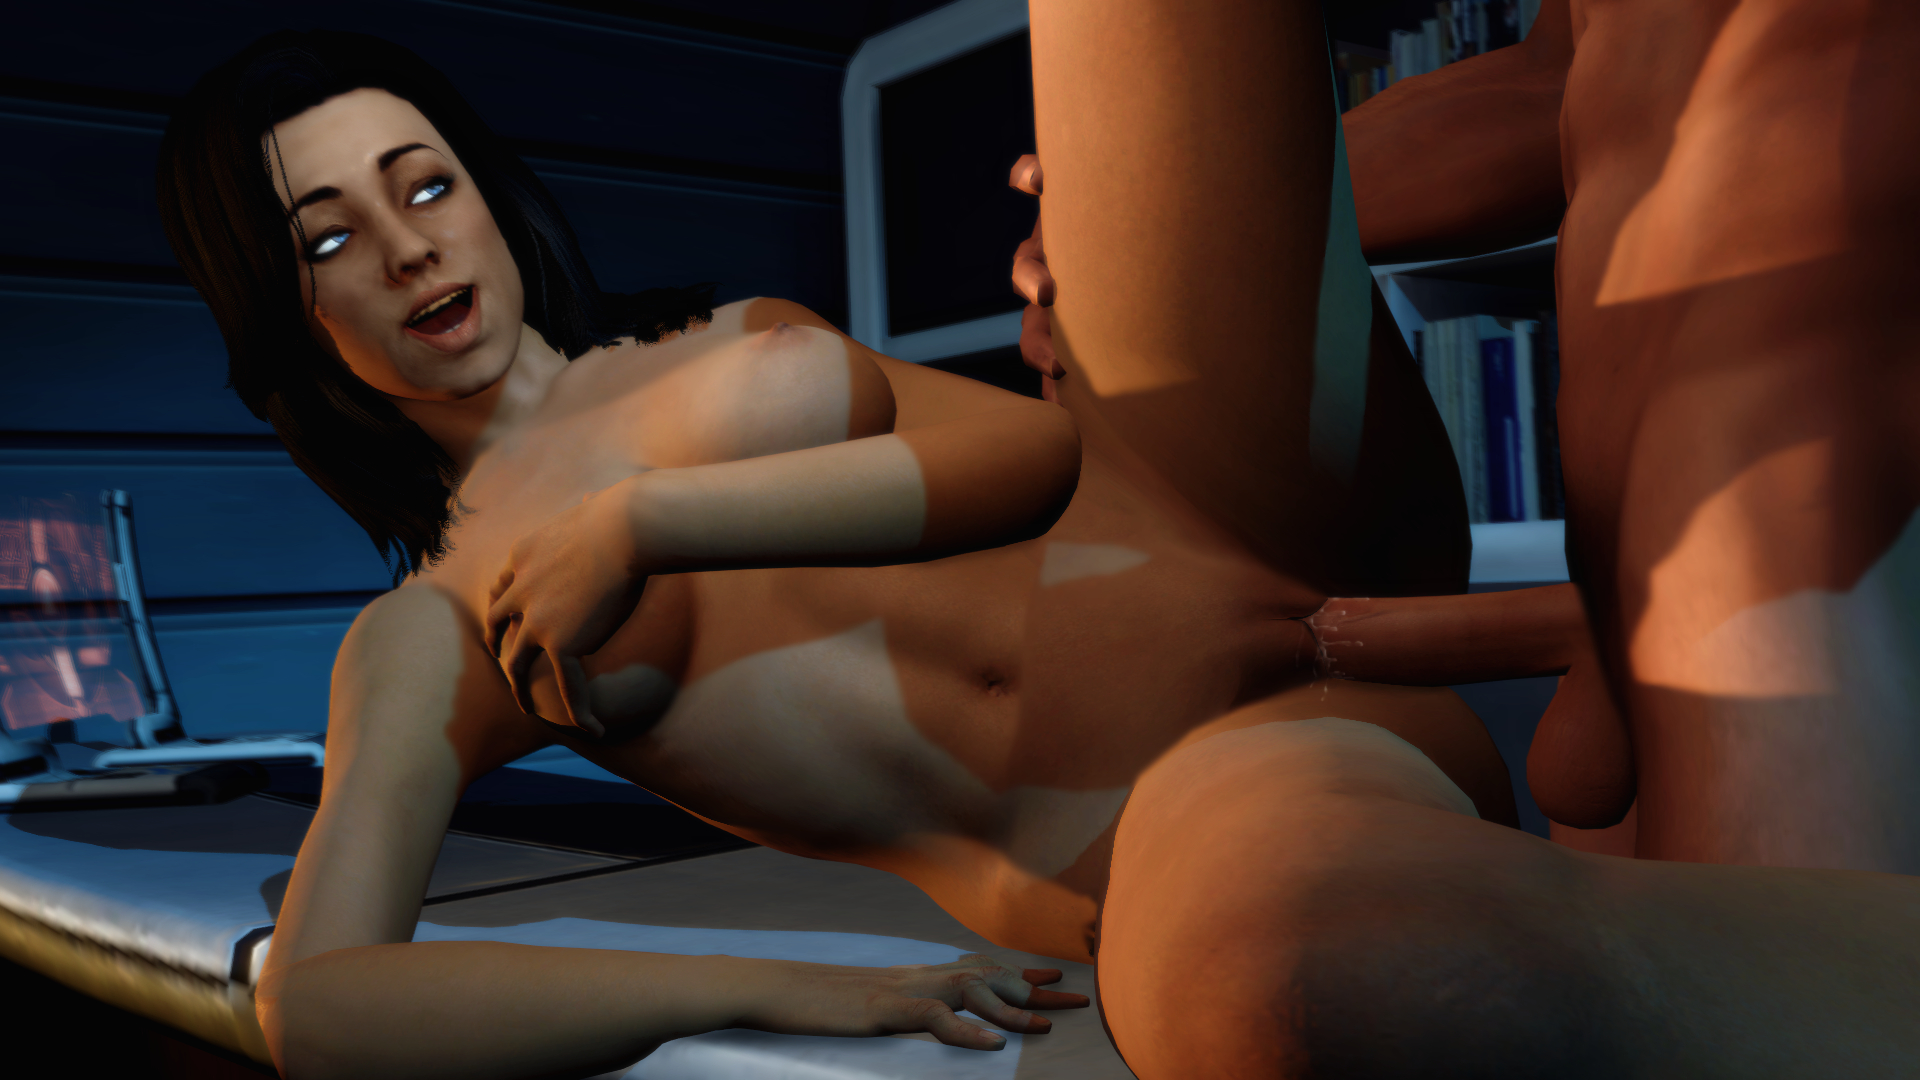 Mass effect sex mod porn pron girls